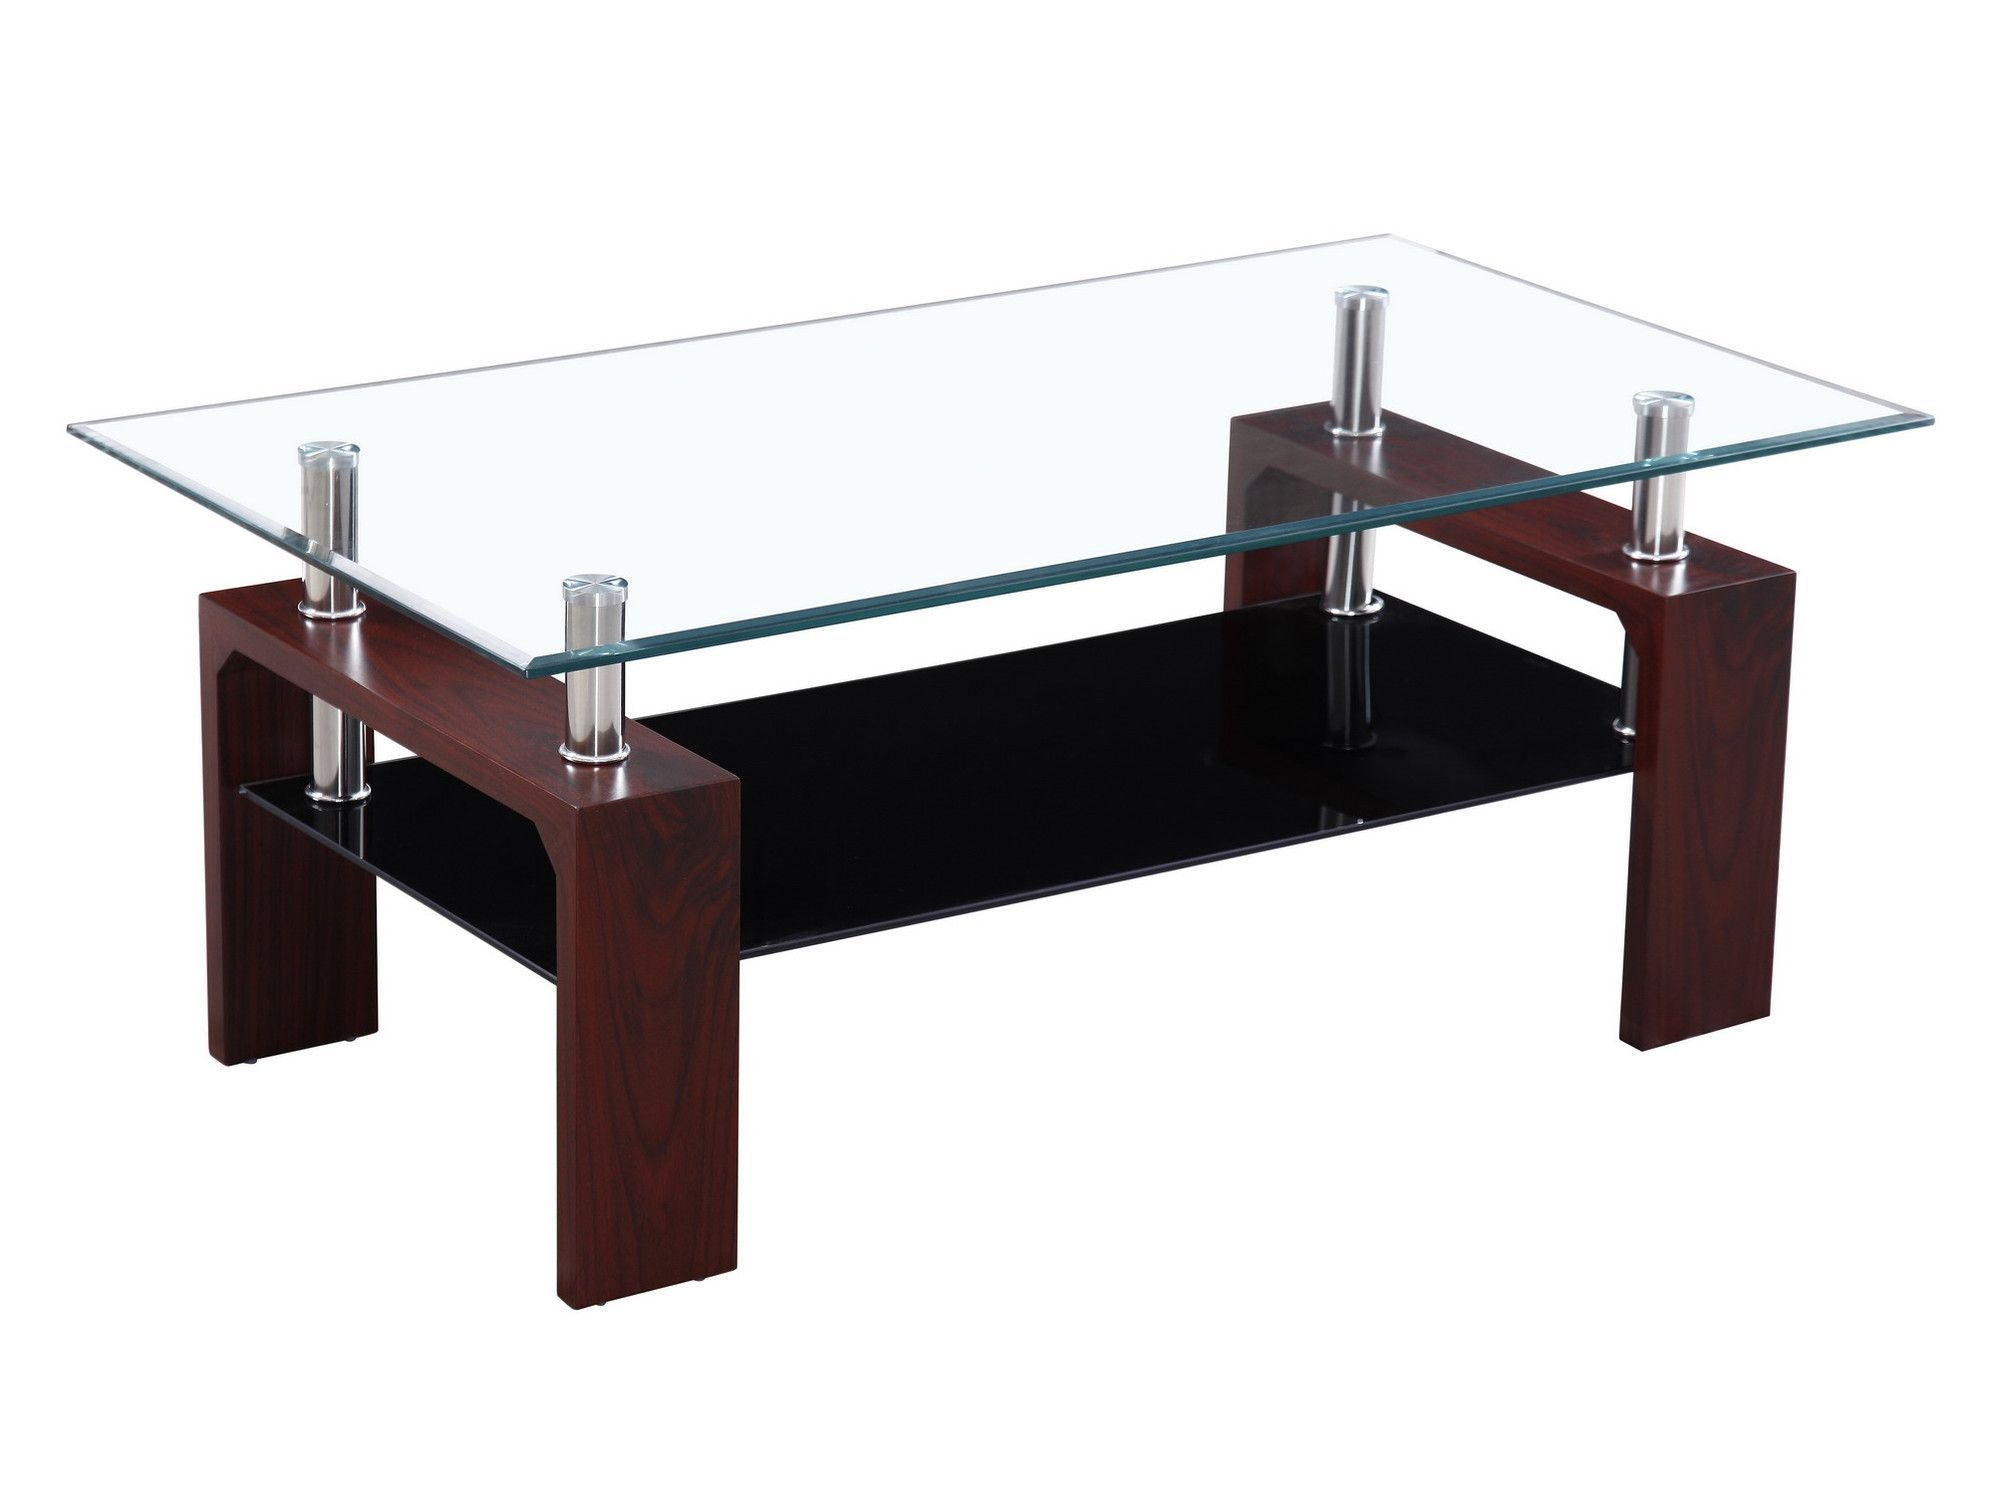 Contemporary Rectangle Coffee Tables In A 2 Shelf Style. Make A Glass Top  Cocktail Table